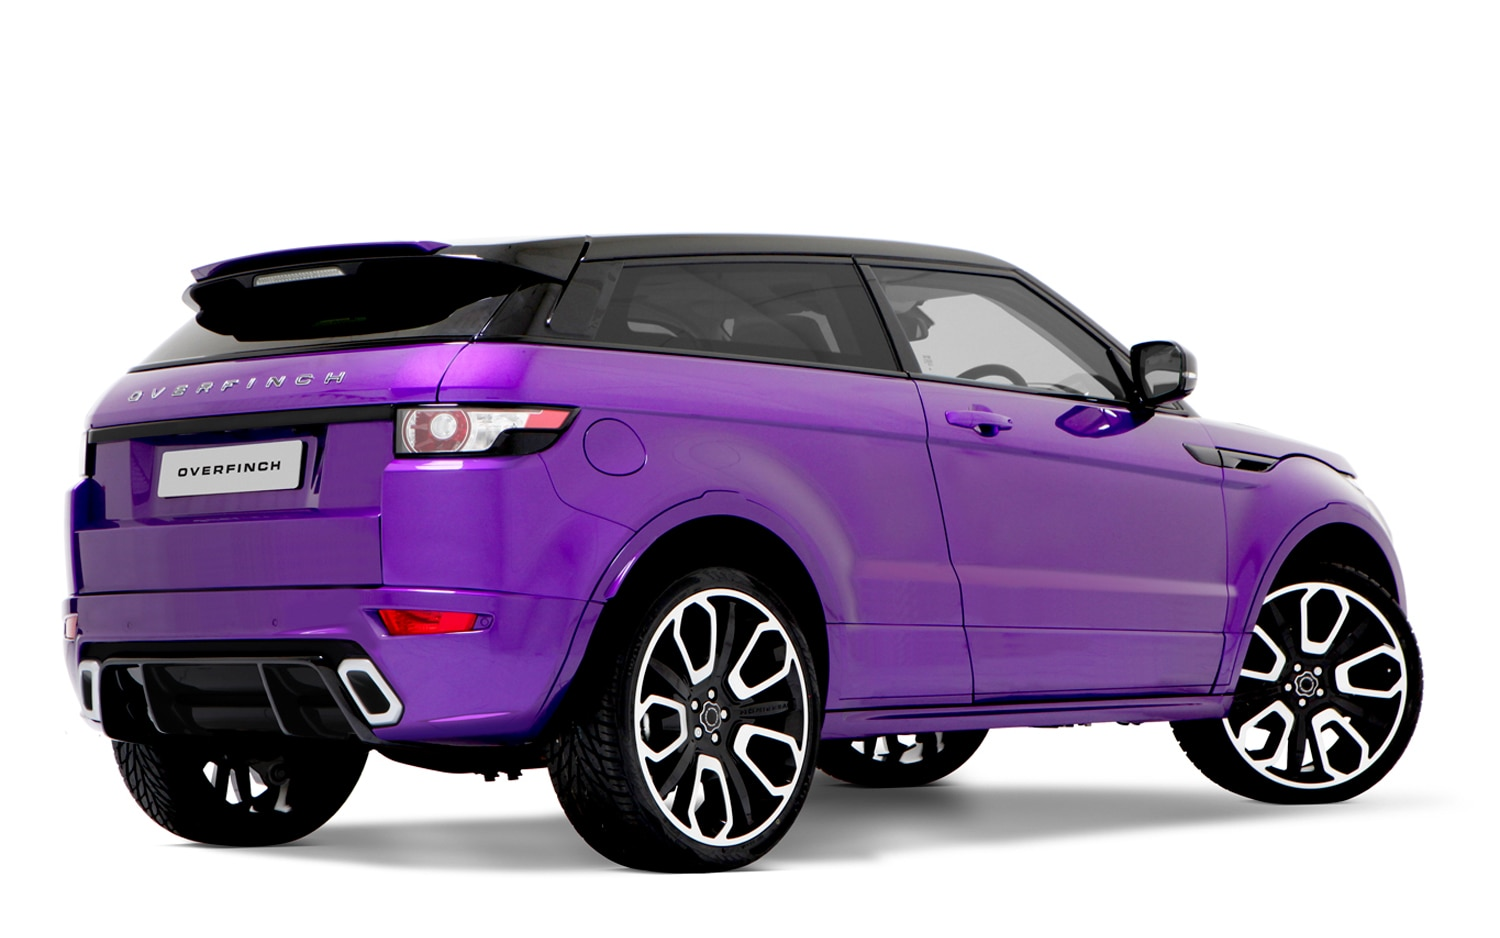 technicolor power overfinch upgrades range rover sport and evoque. Black Bedroom Furniture Sets. Home Design Ideas